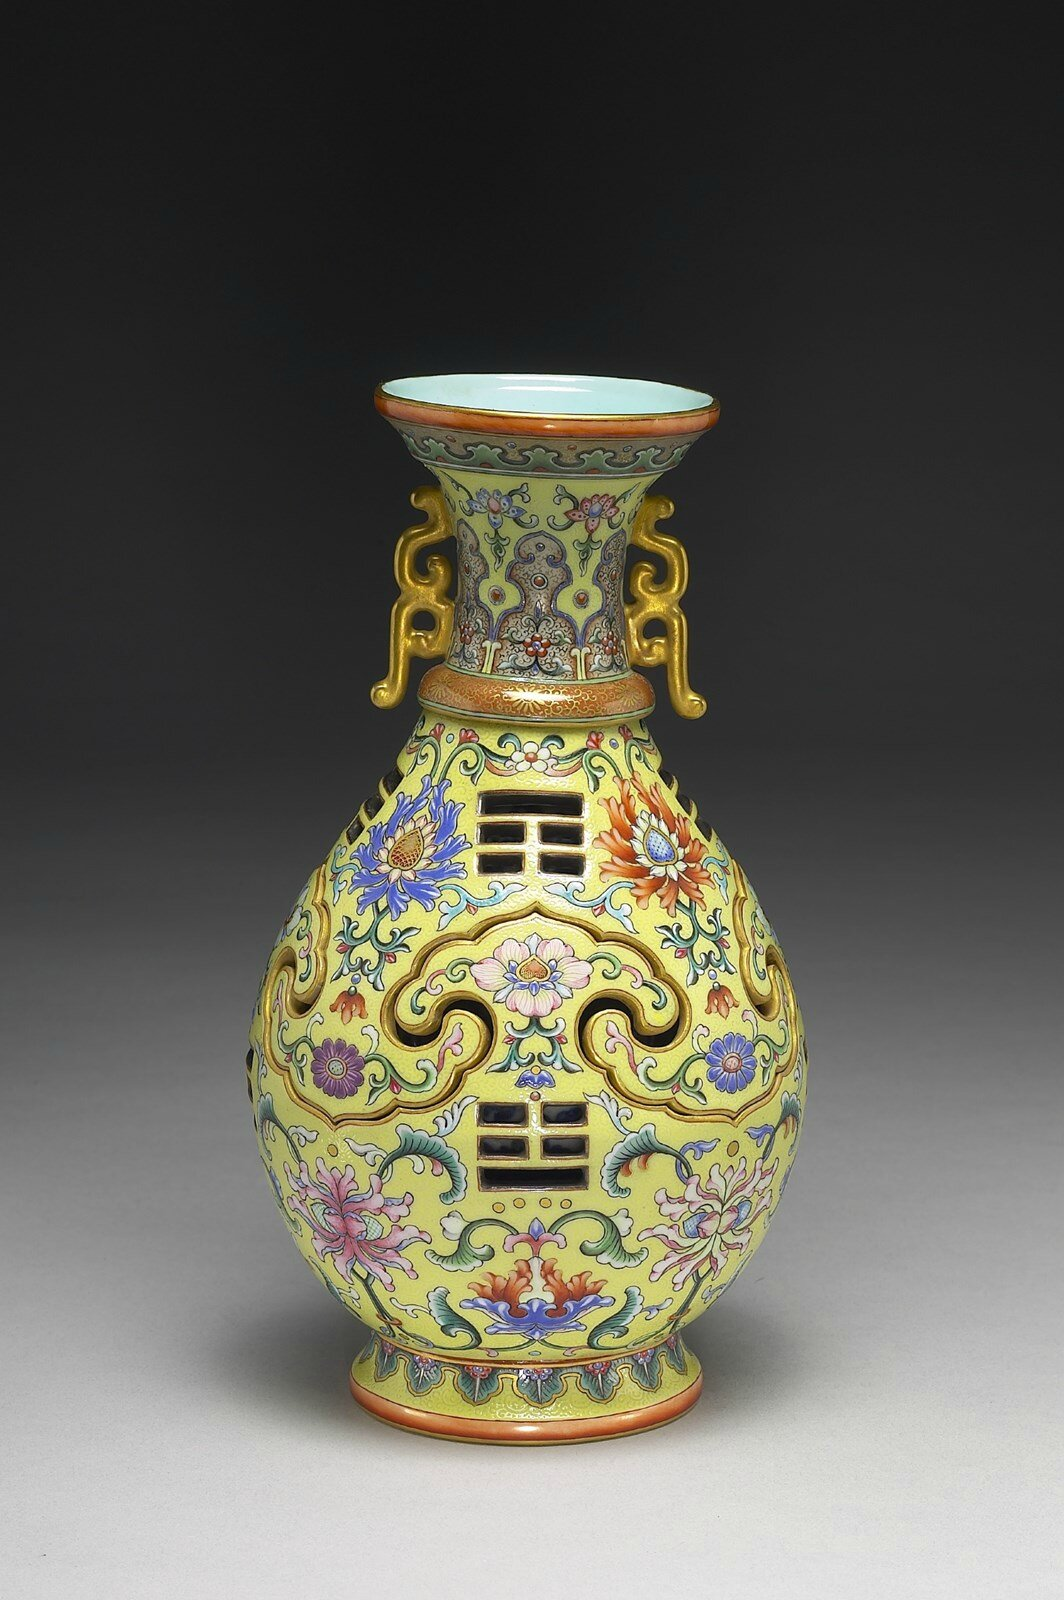 Major Exhibition of Masterpieces from the National Palace Museum, Taipei, Presented in Houston